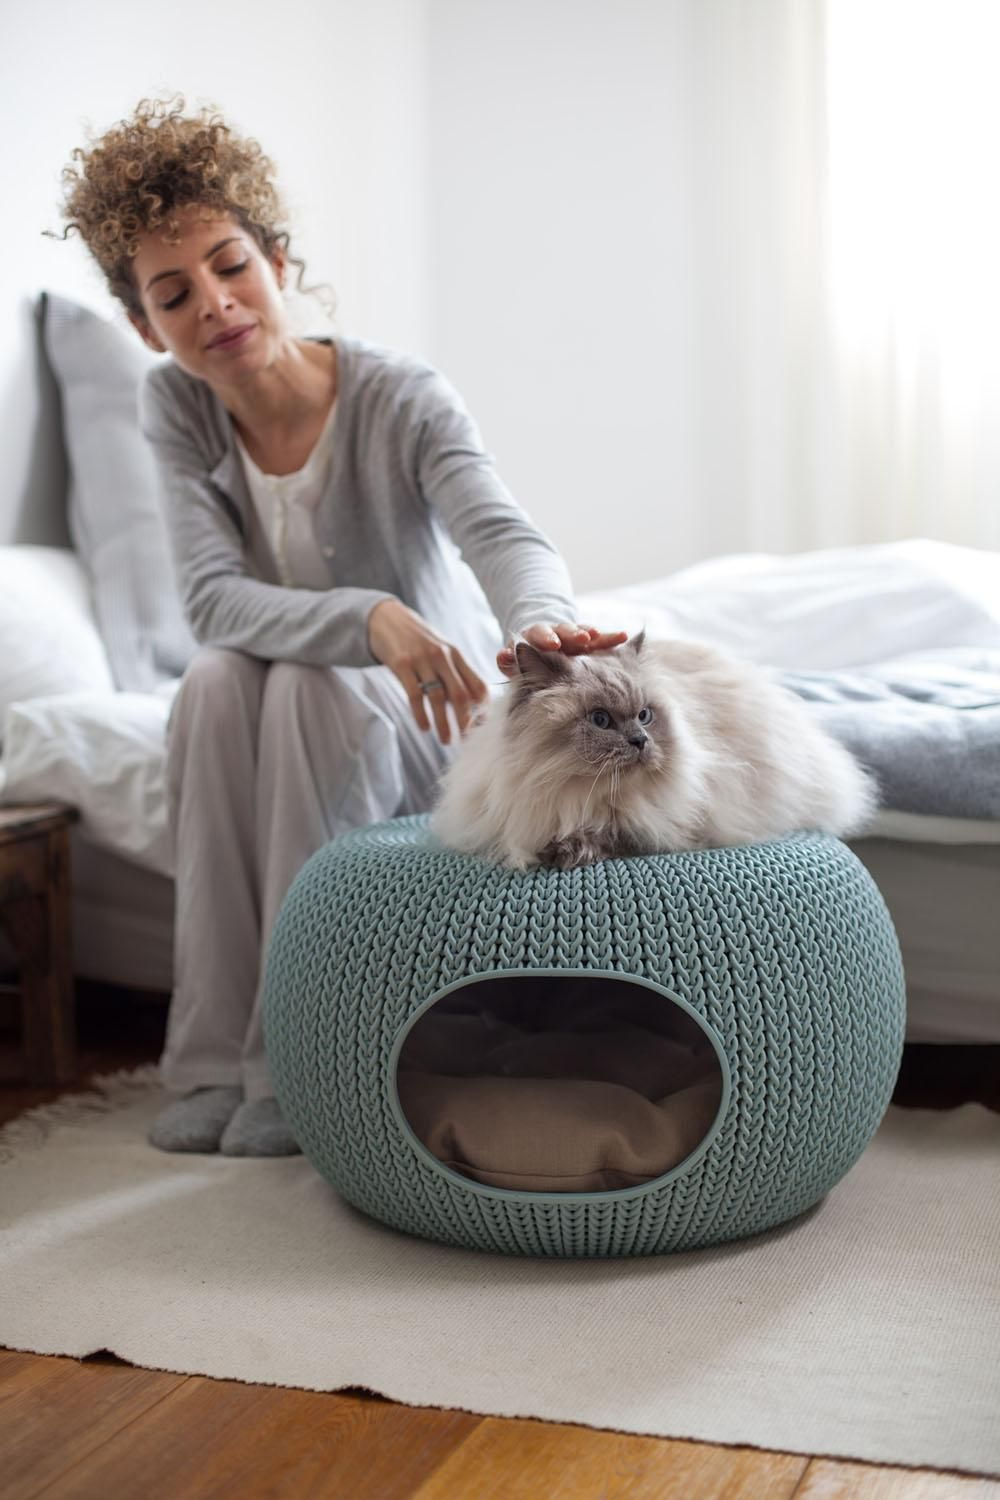 Keter knit resin pet cozie plastic bed for dogs and cats